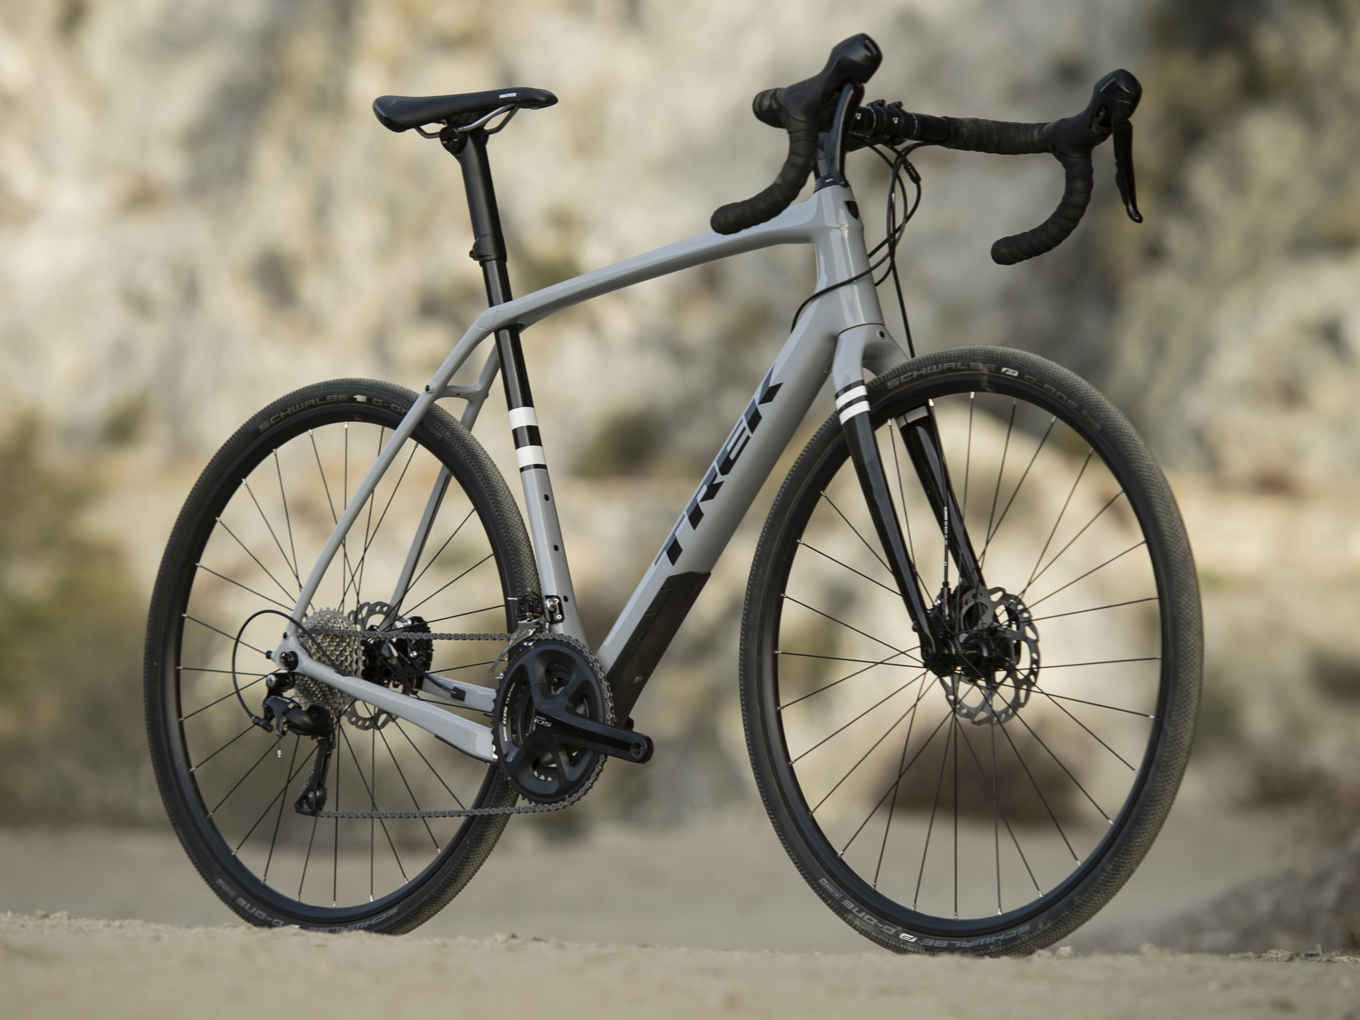 Introducing The Trek Checkpoint Gravel Bike Gravel Bike Bicycle